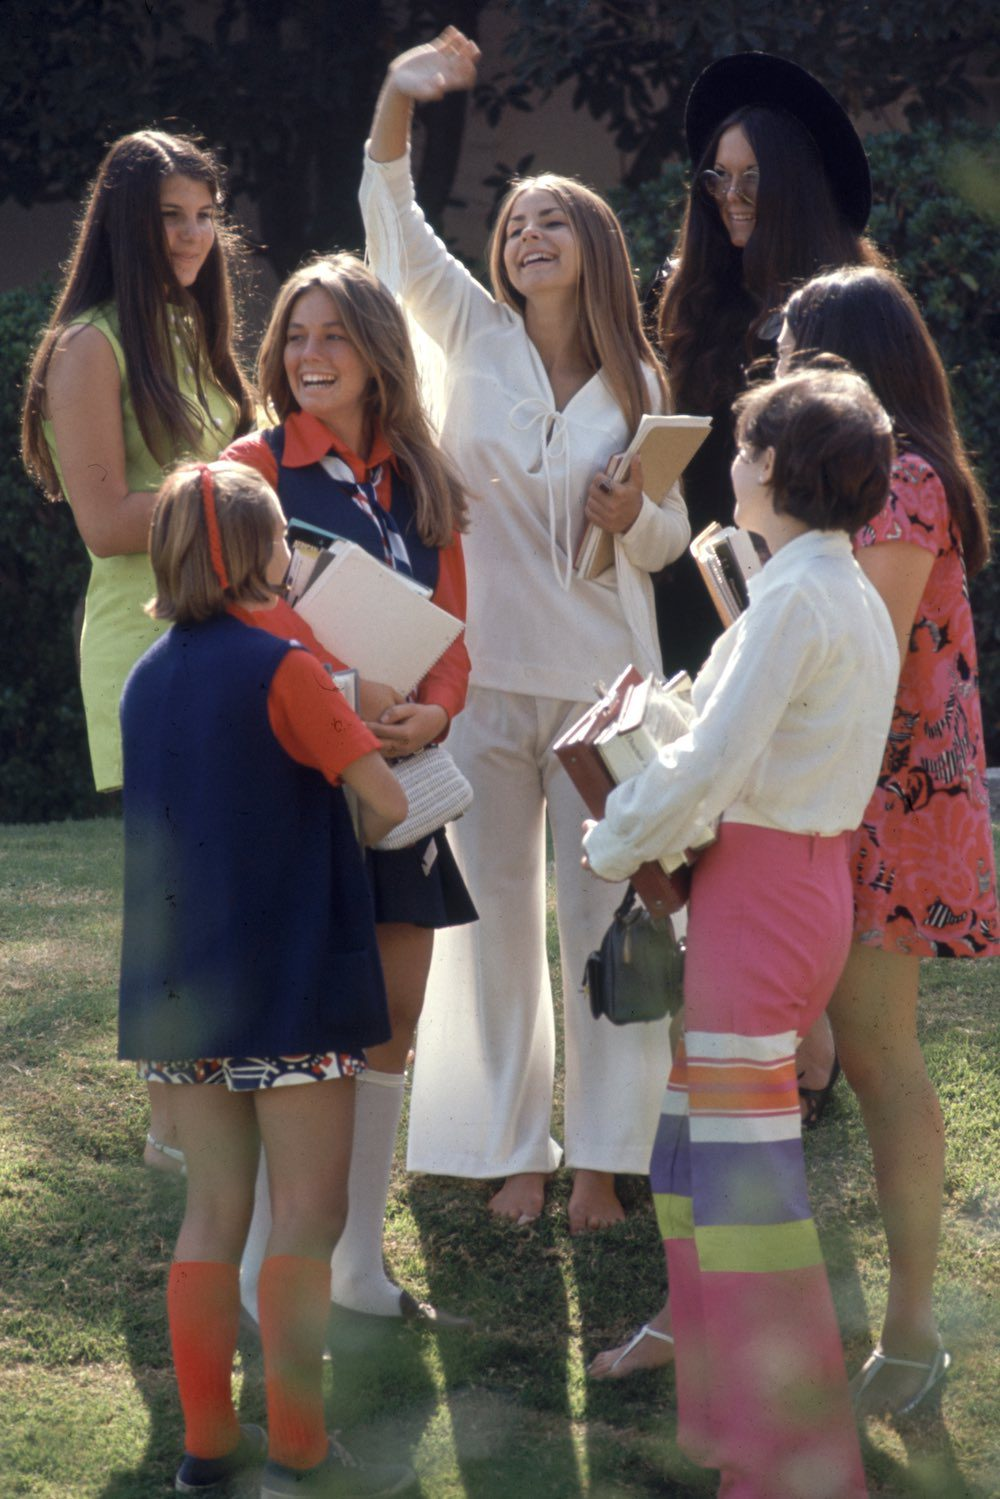 Highschoolers In 'Hippy' Fashions